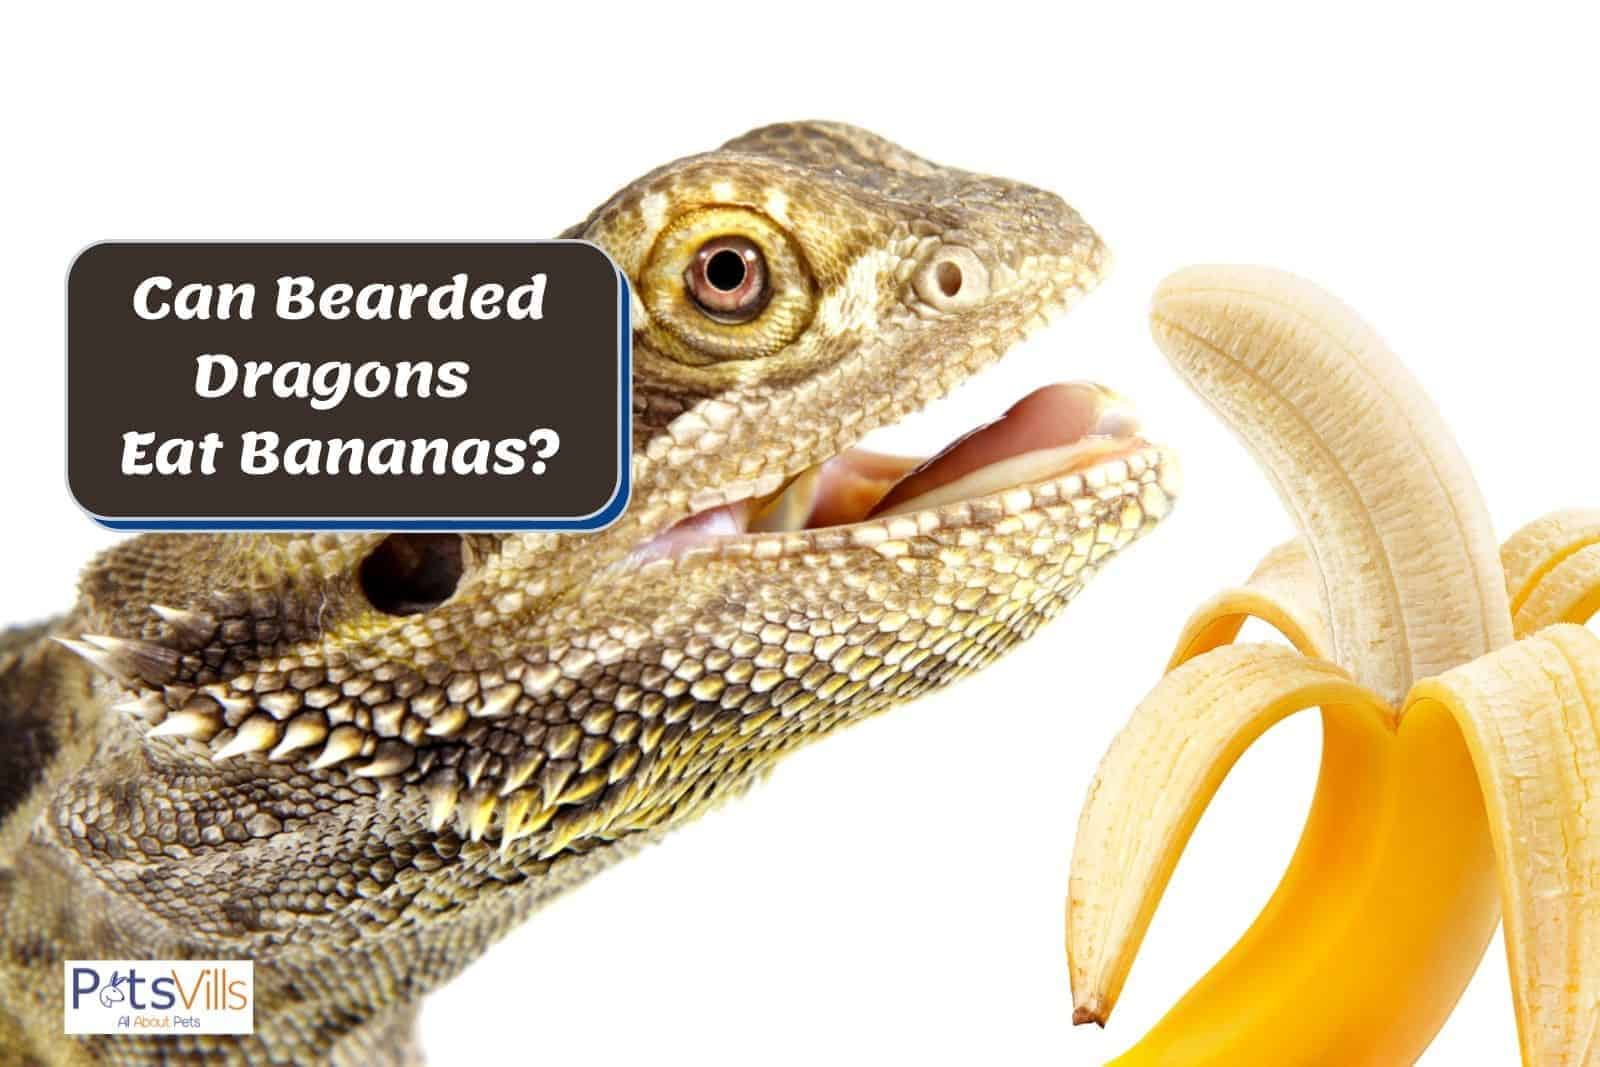 a bearded dragon about to eat a banana but can bearded dragons eat bananas?